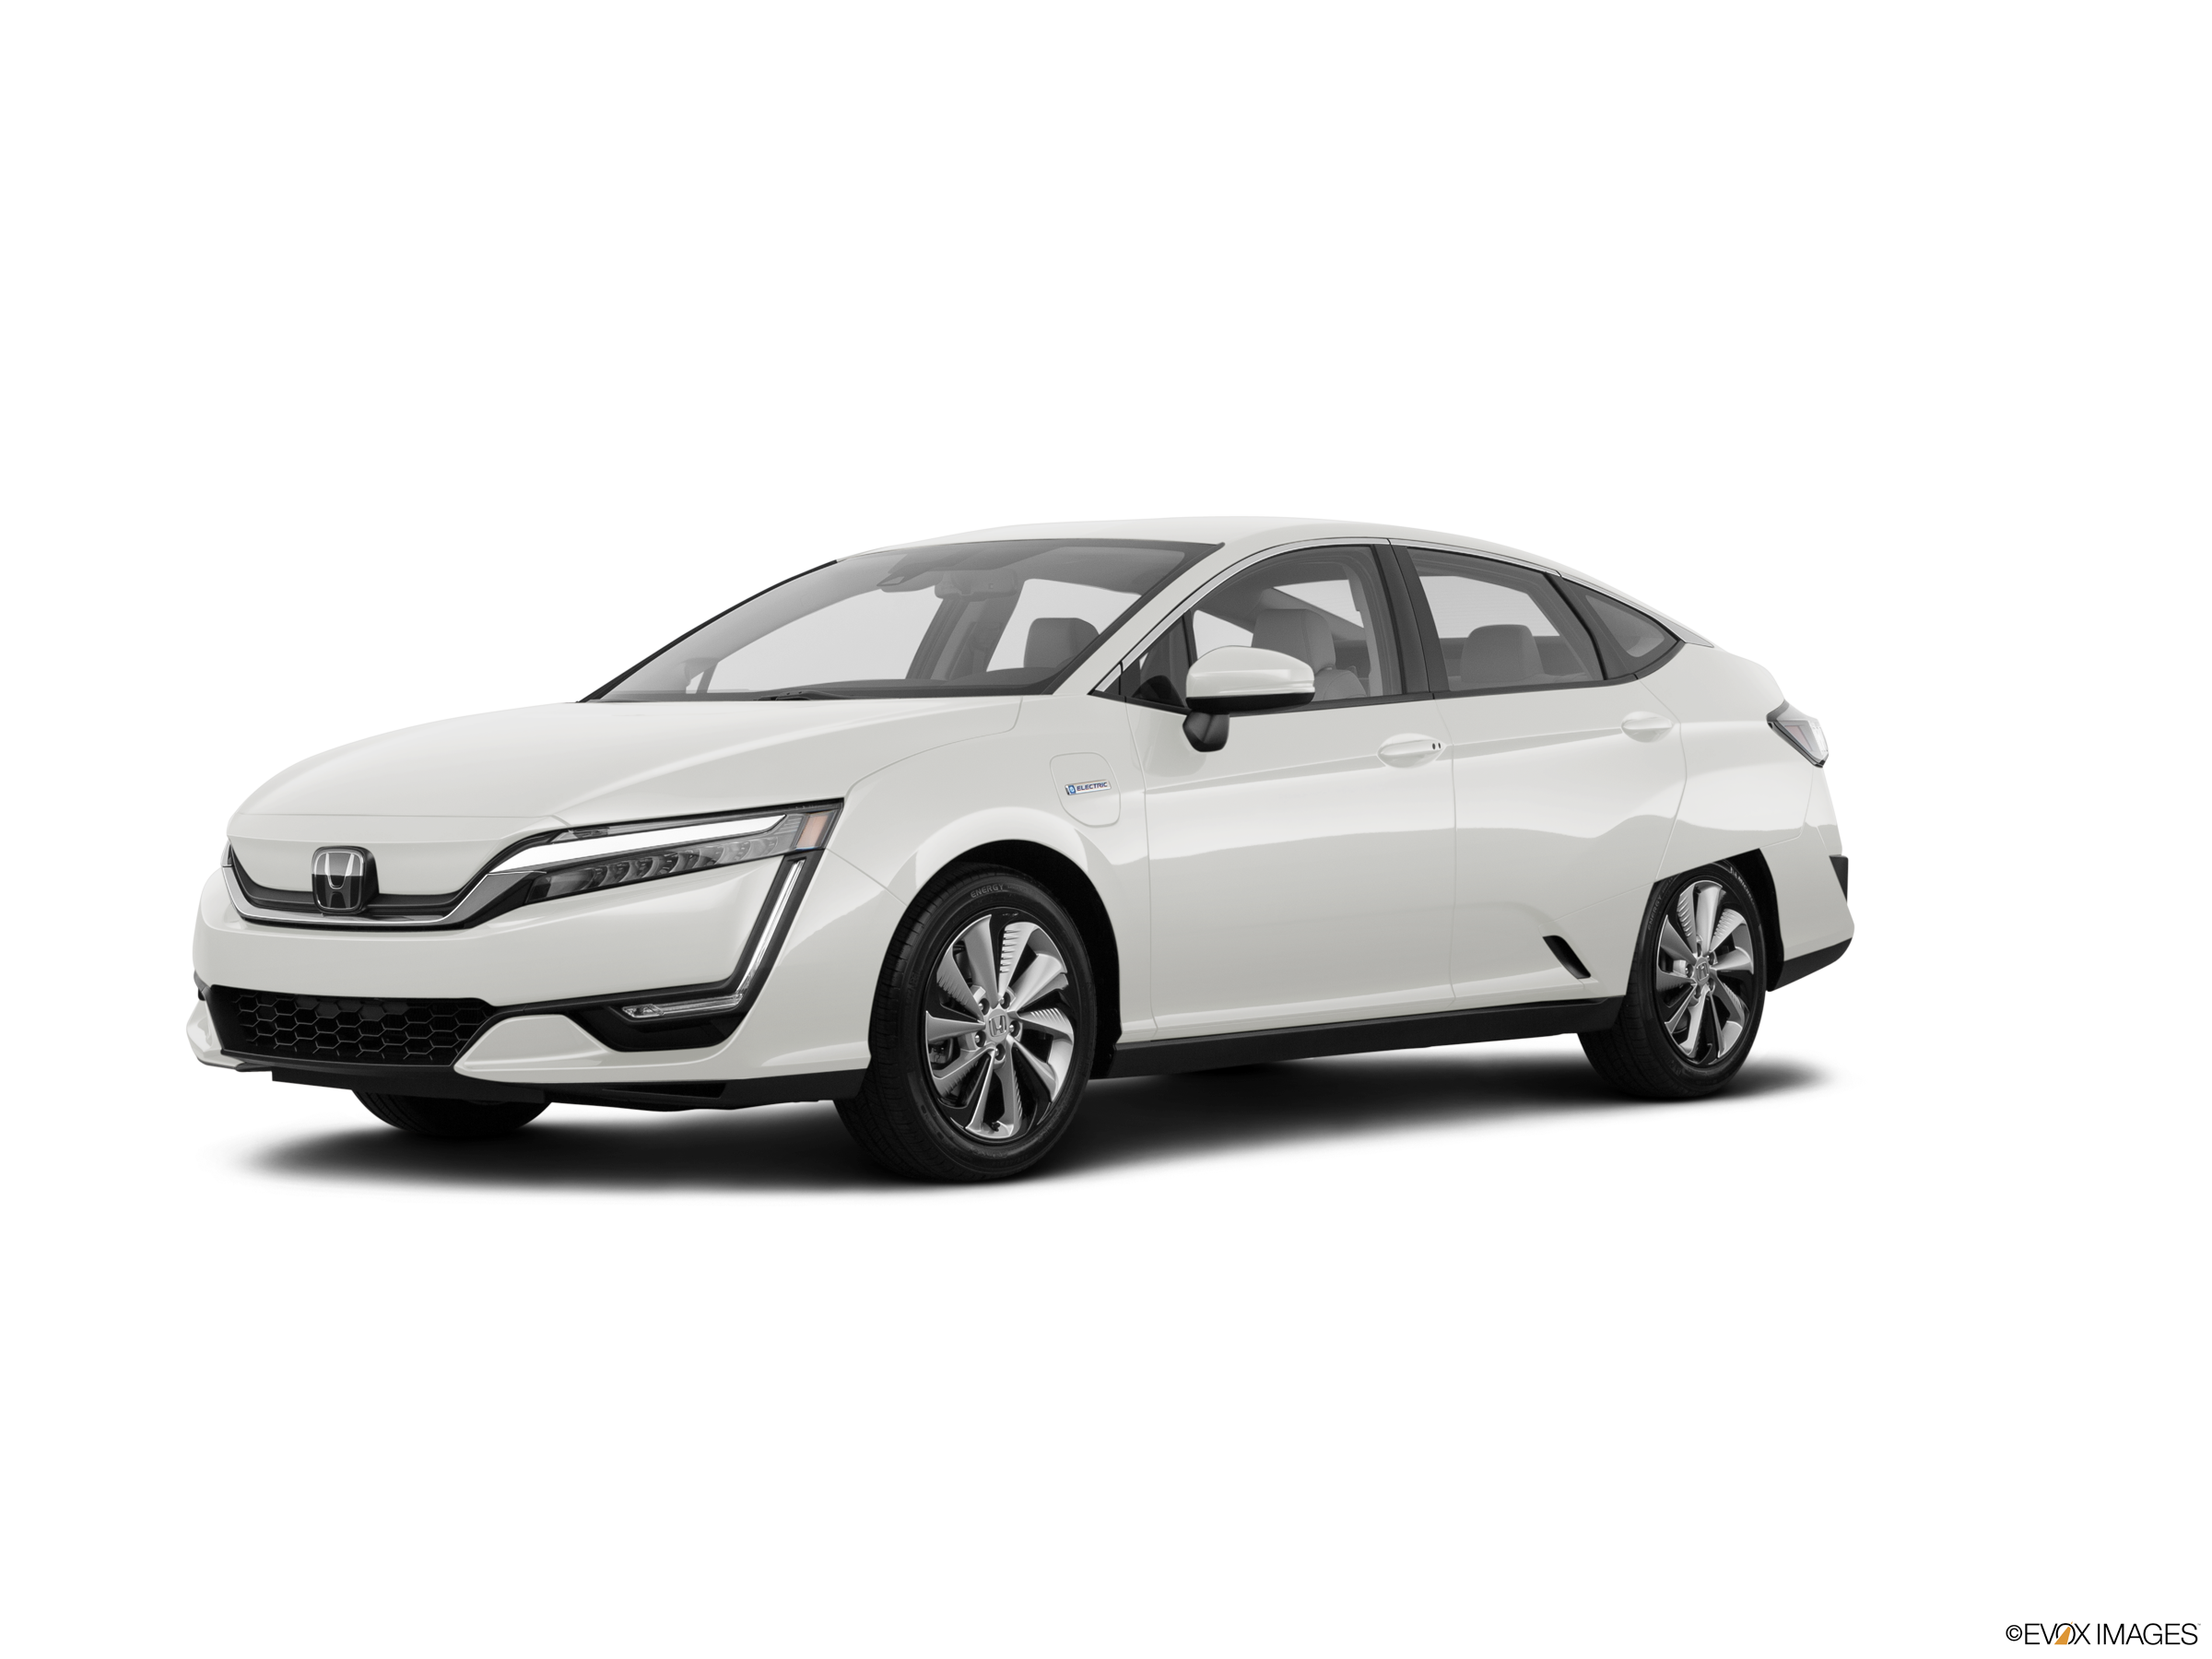 Top Expert Rated Electric Cars of 2017 - 2017 Honda Clarity Electric